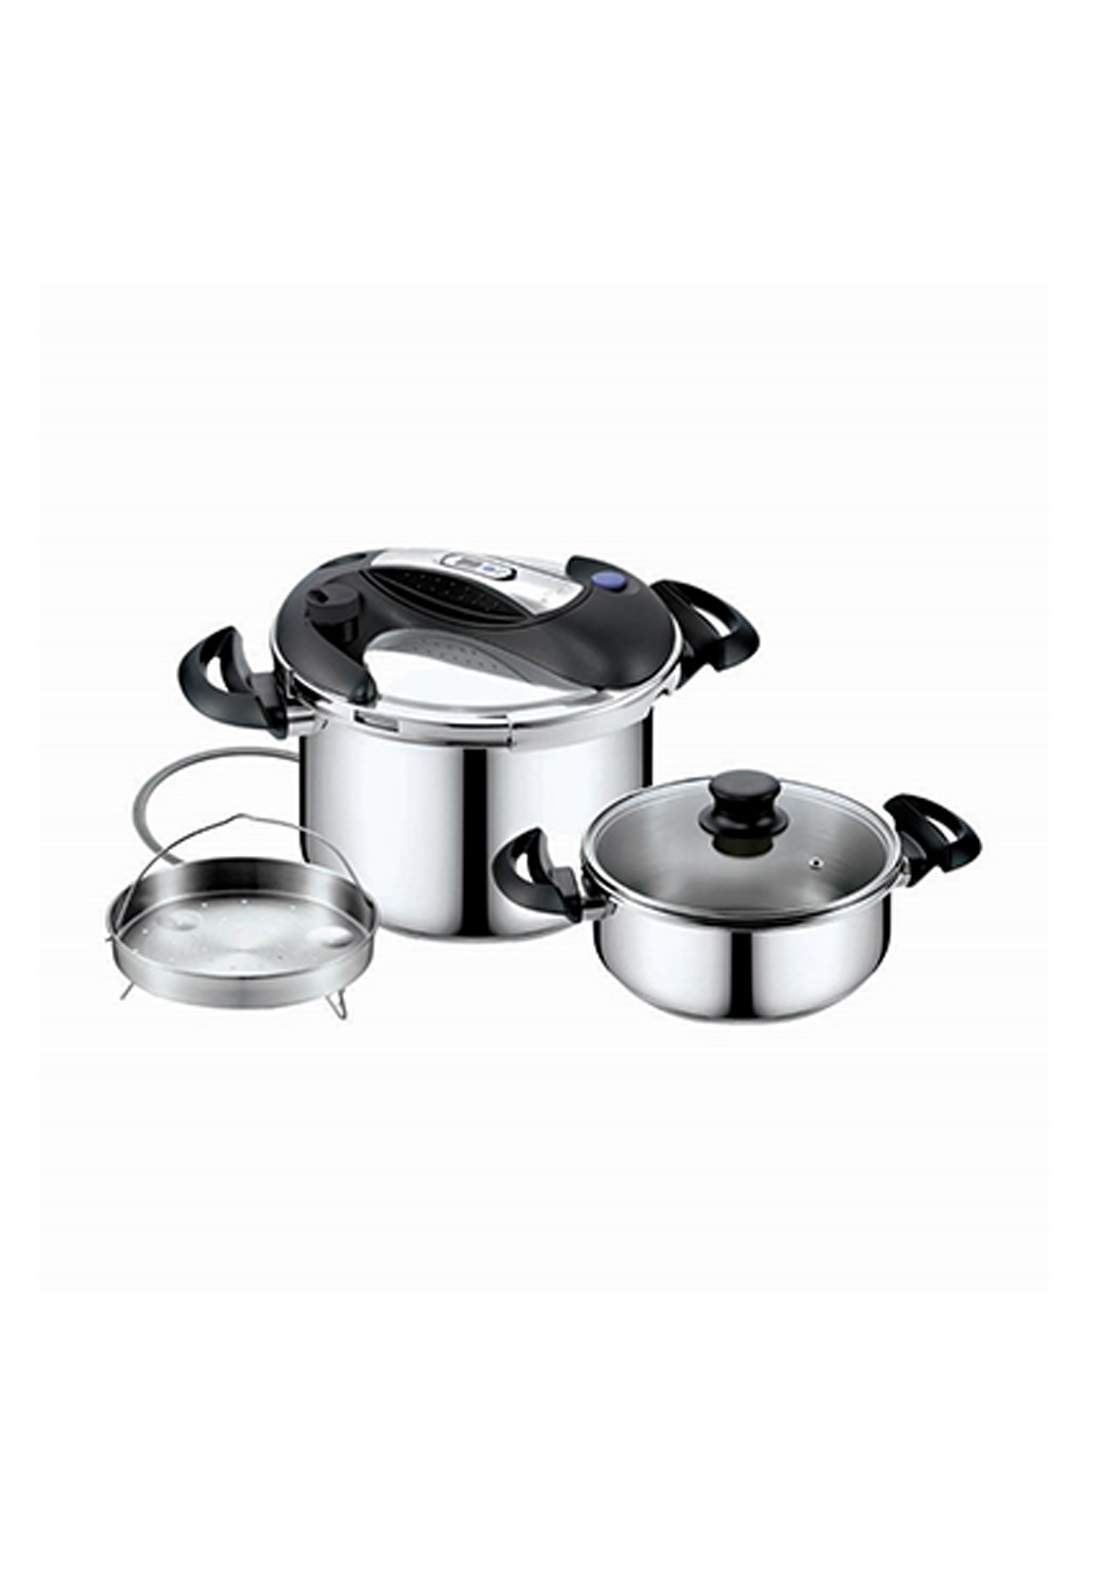 Delmonti  DL 1040 stainless steel Pressure cooker 3 in 1 7L & 5L قدر ضغط